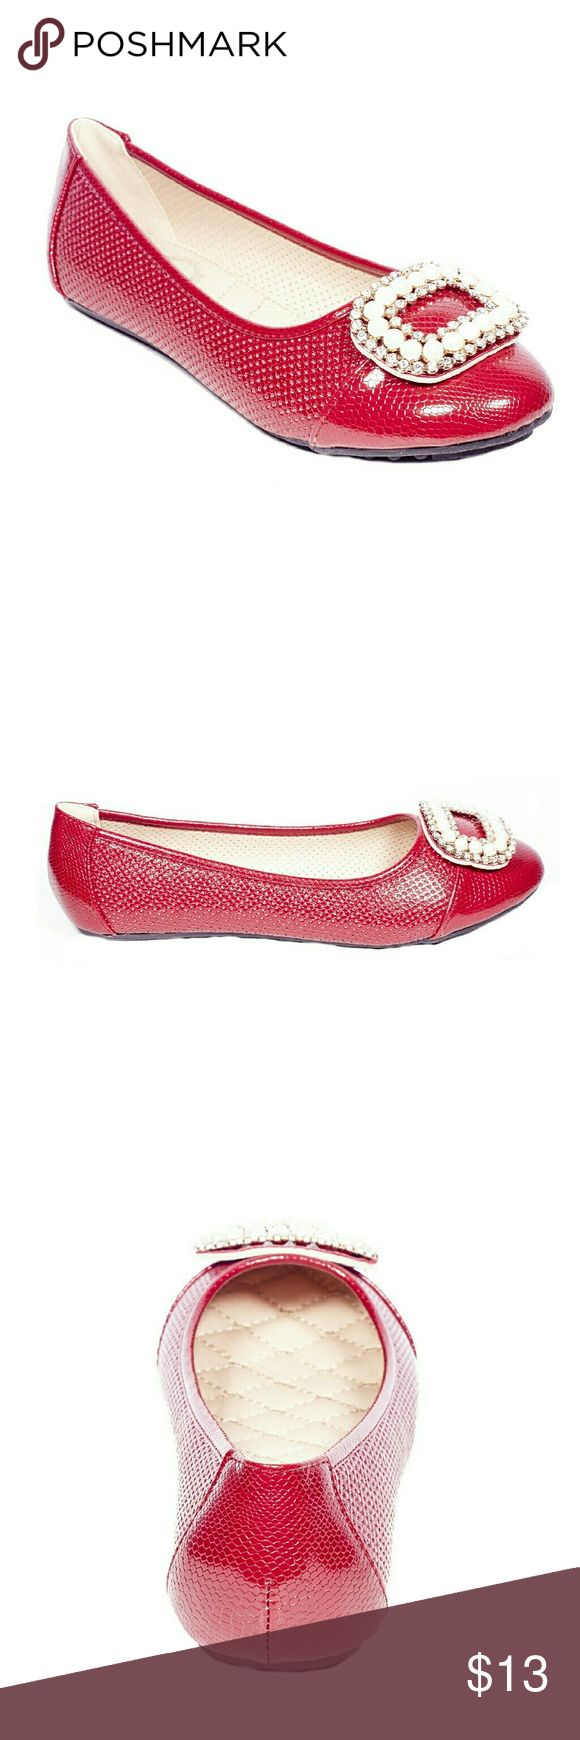 ONE Tory K Perforated Buckled Flats, b-2055, Red Brand new Victoria K perforated ballerina flats with a stylish stone-studded oversized buckle in the front. From the ONE collection. Soft cushioned sole, very comfortable, true to size. Bubbled bottom sole for extra traction. Tory K  Shoes Flats & Loafers